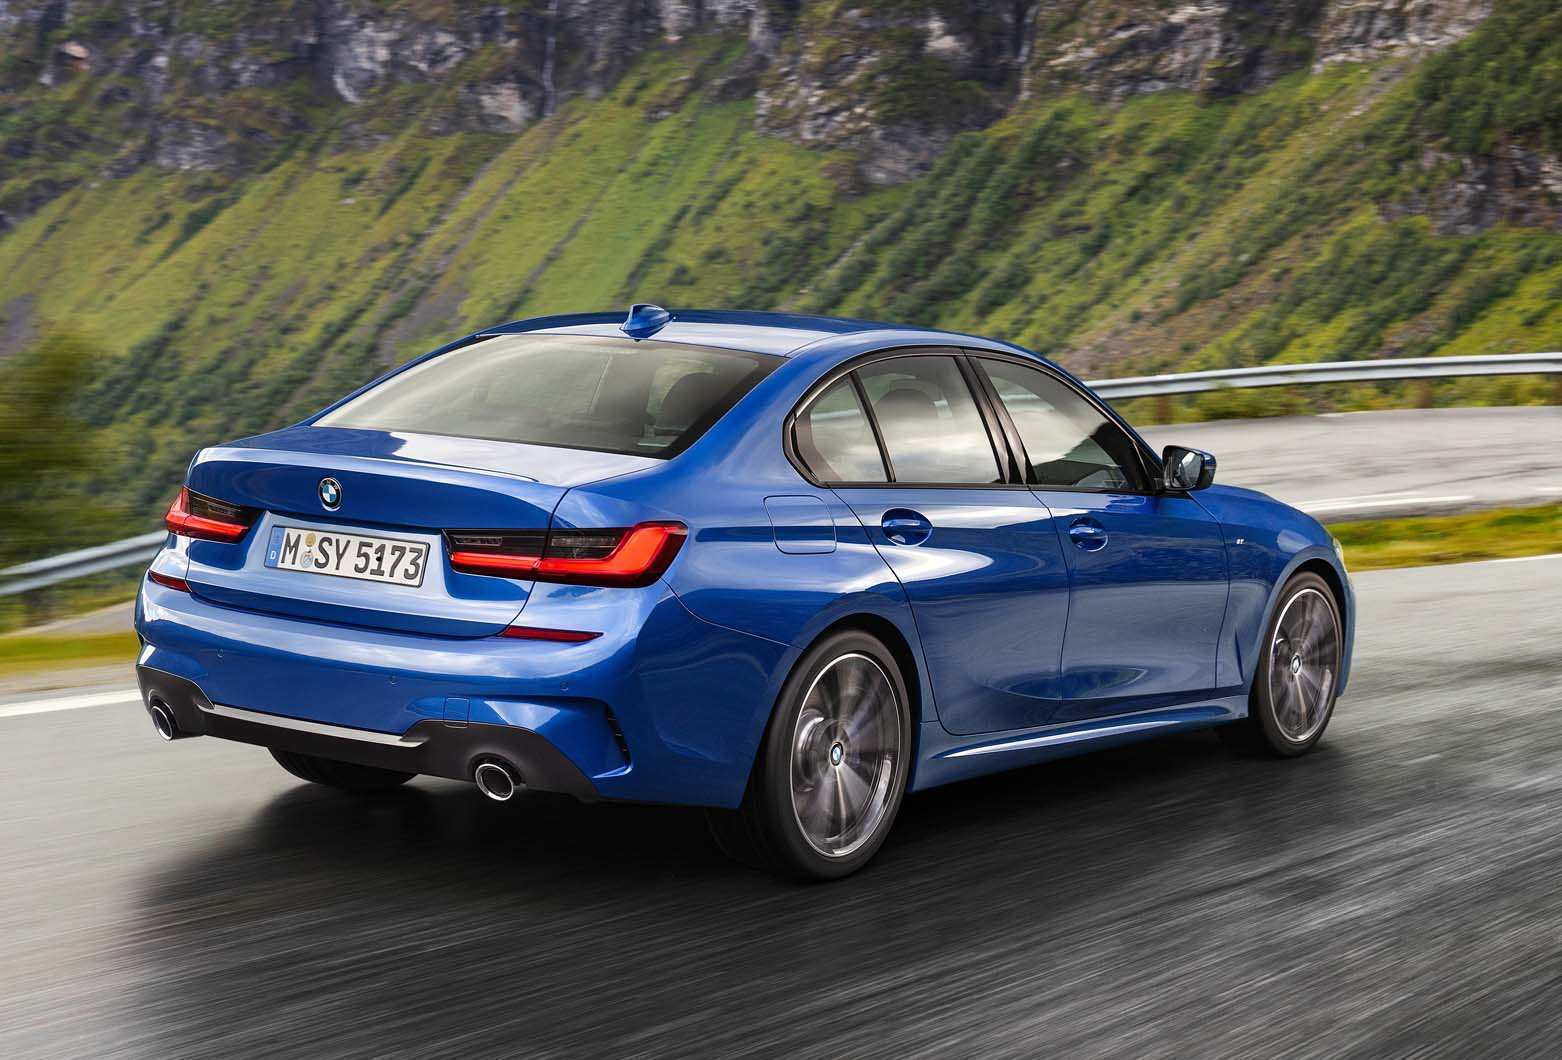 63 Great 2019 Bmw G20 3 Series Price and Review for 2019 Bmw G20 3 Series